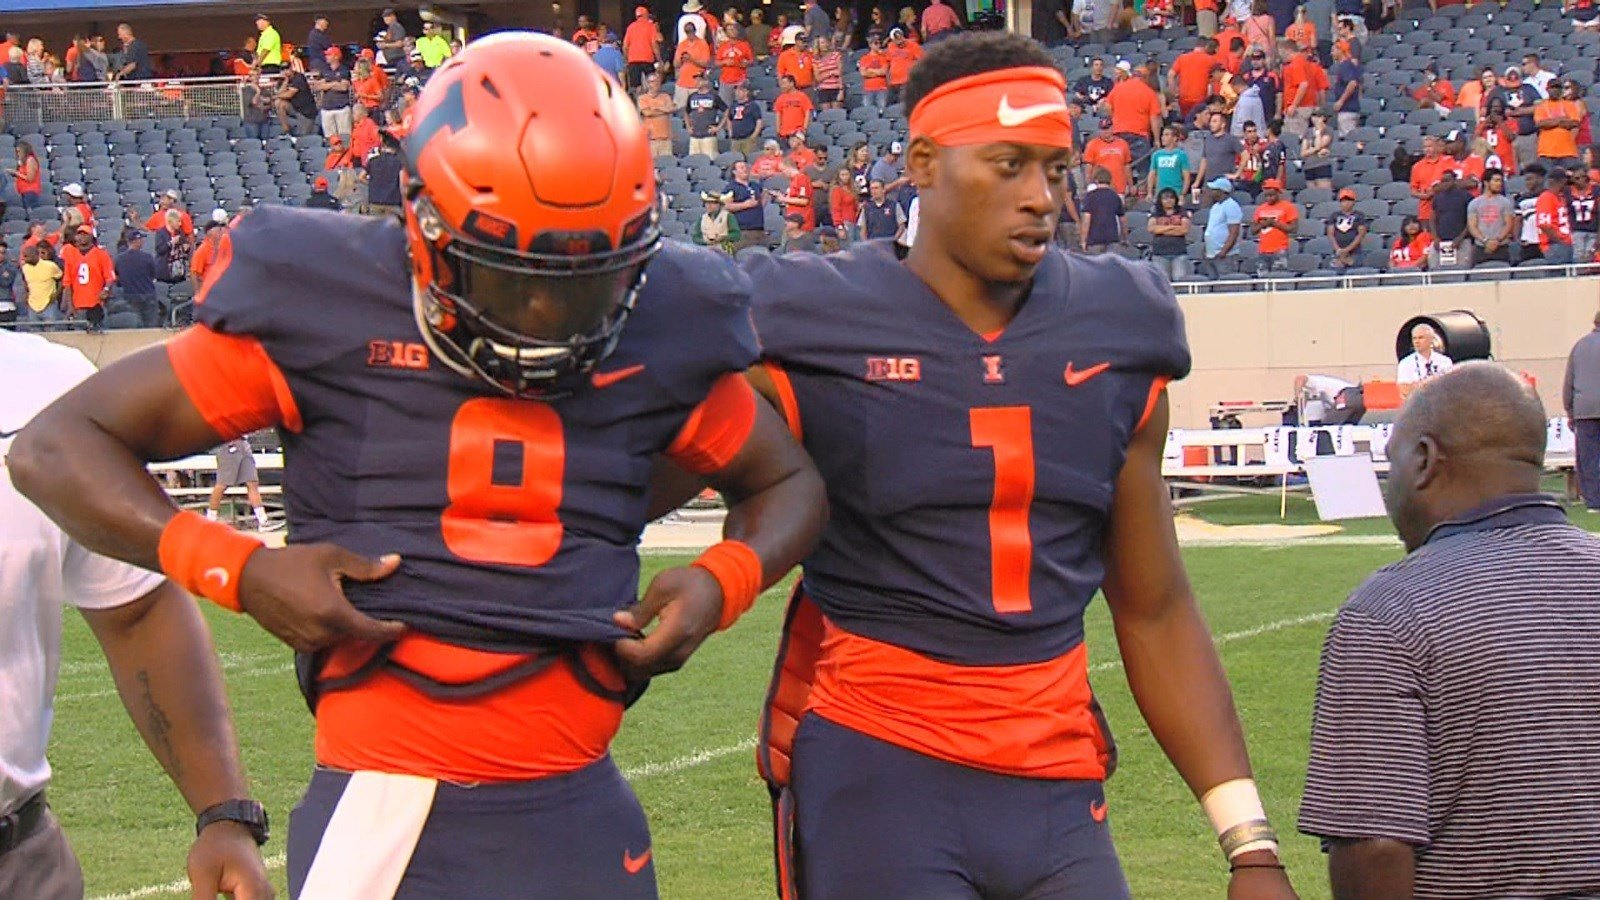 Freshman quarterback MJ RIvers (left) is consoled by graduate transfer AJ Bush moments after the Illini offense's attempt at a game-winning drive came up short on Saturday at Soldier Field.